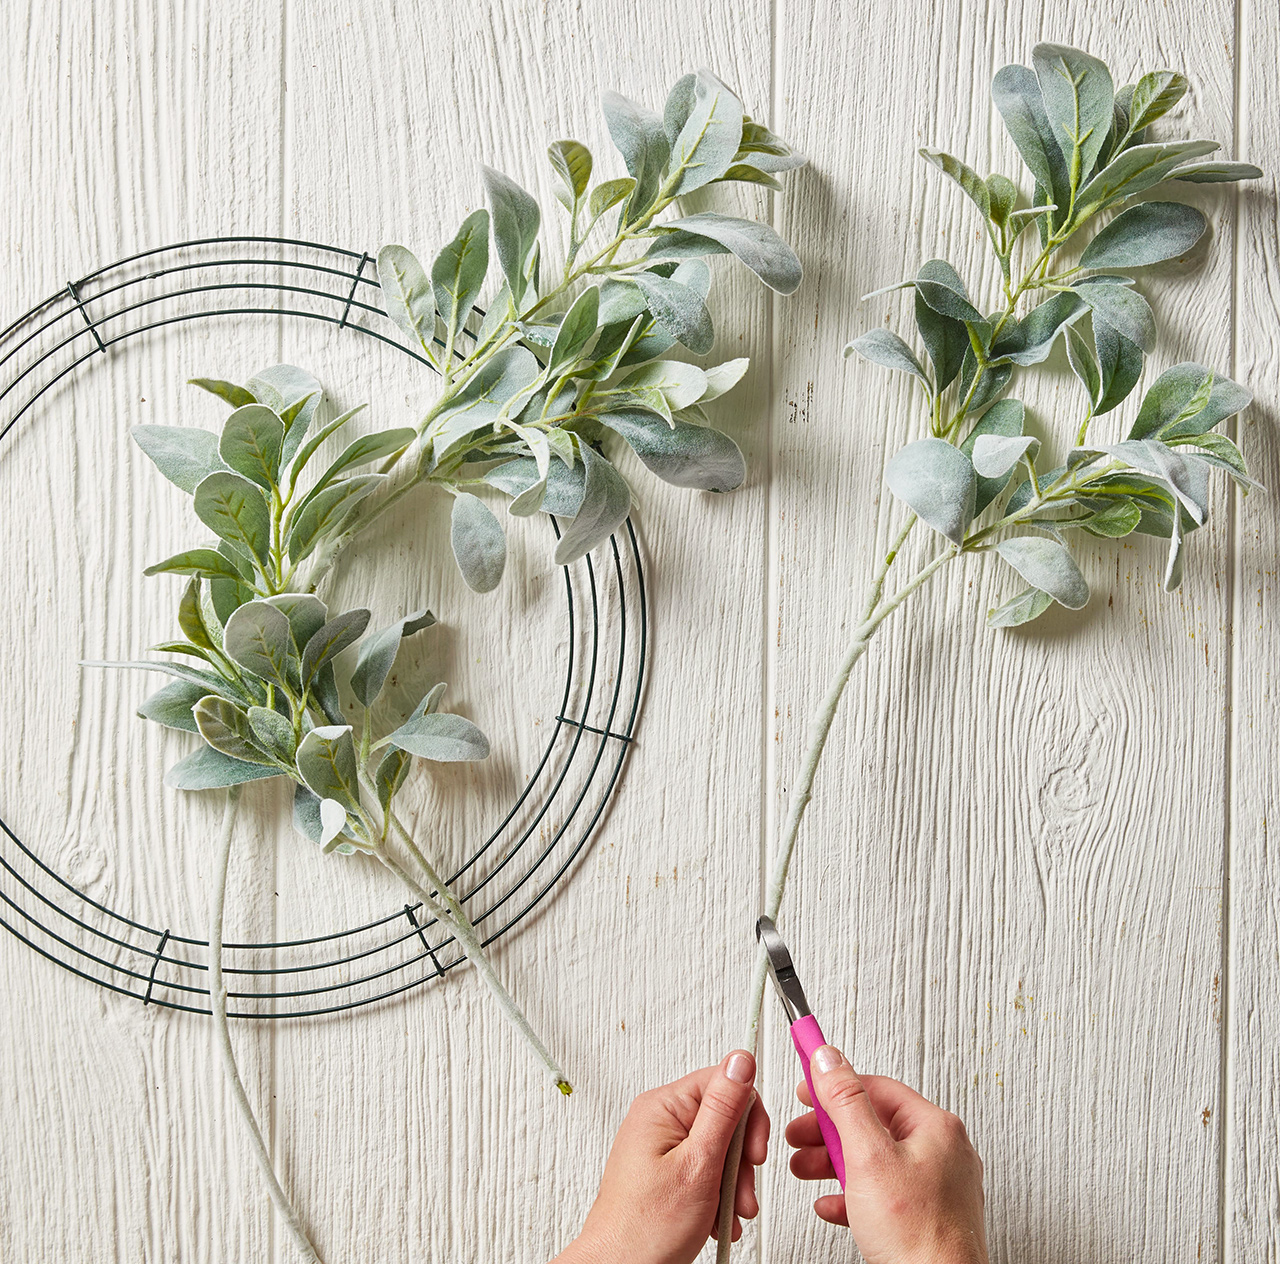 clipping ends off branches for wire wreath